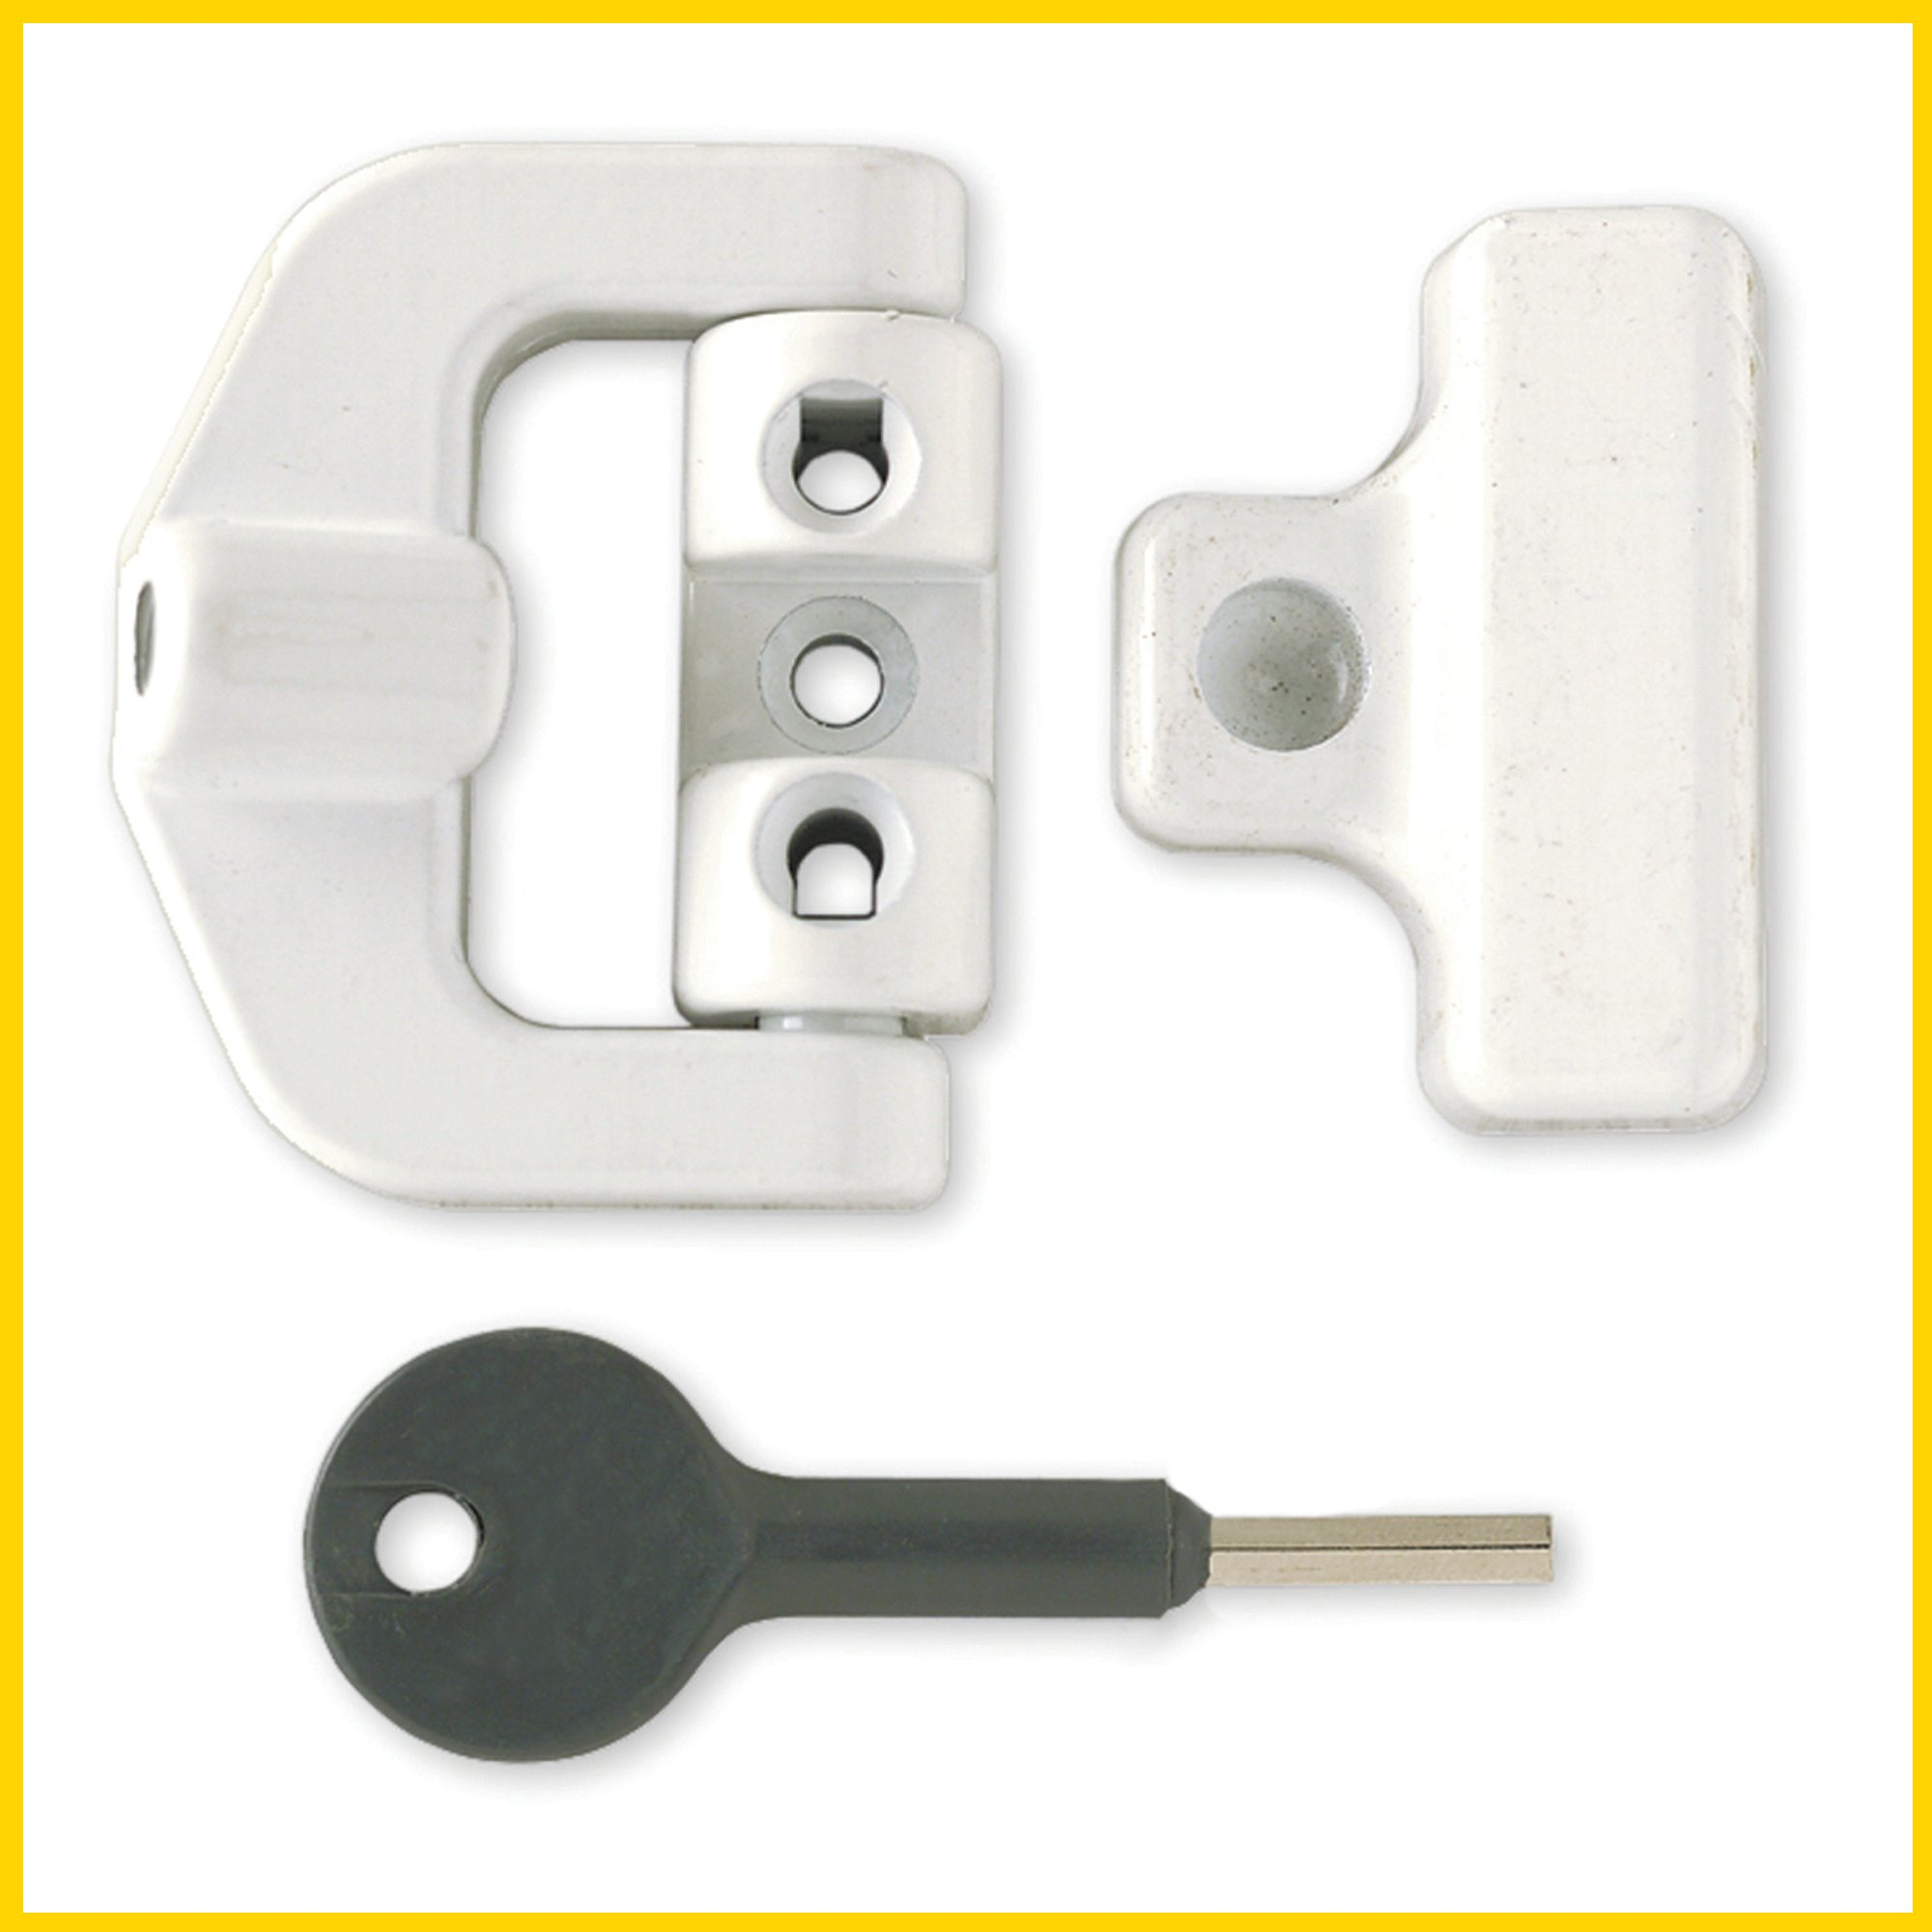 8k123 Pvcu Window Lock Window Security Smart Locks